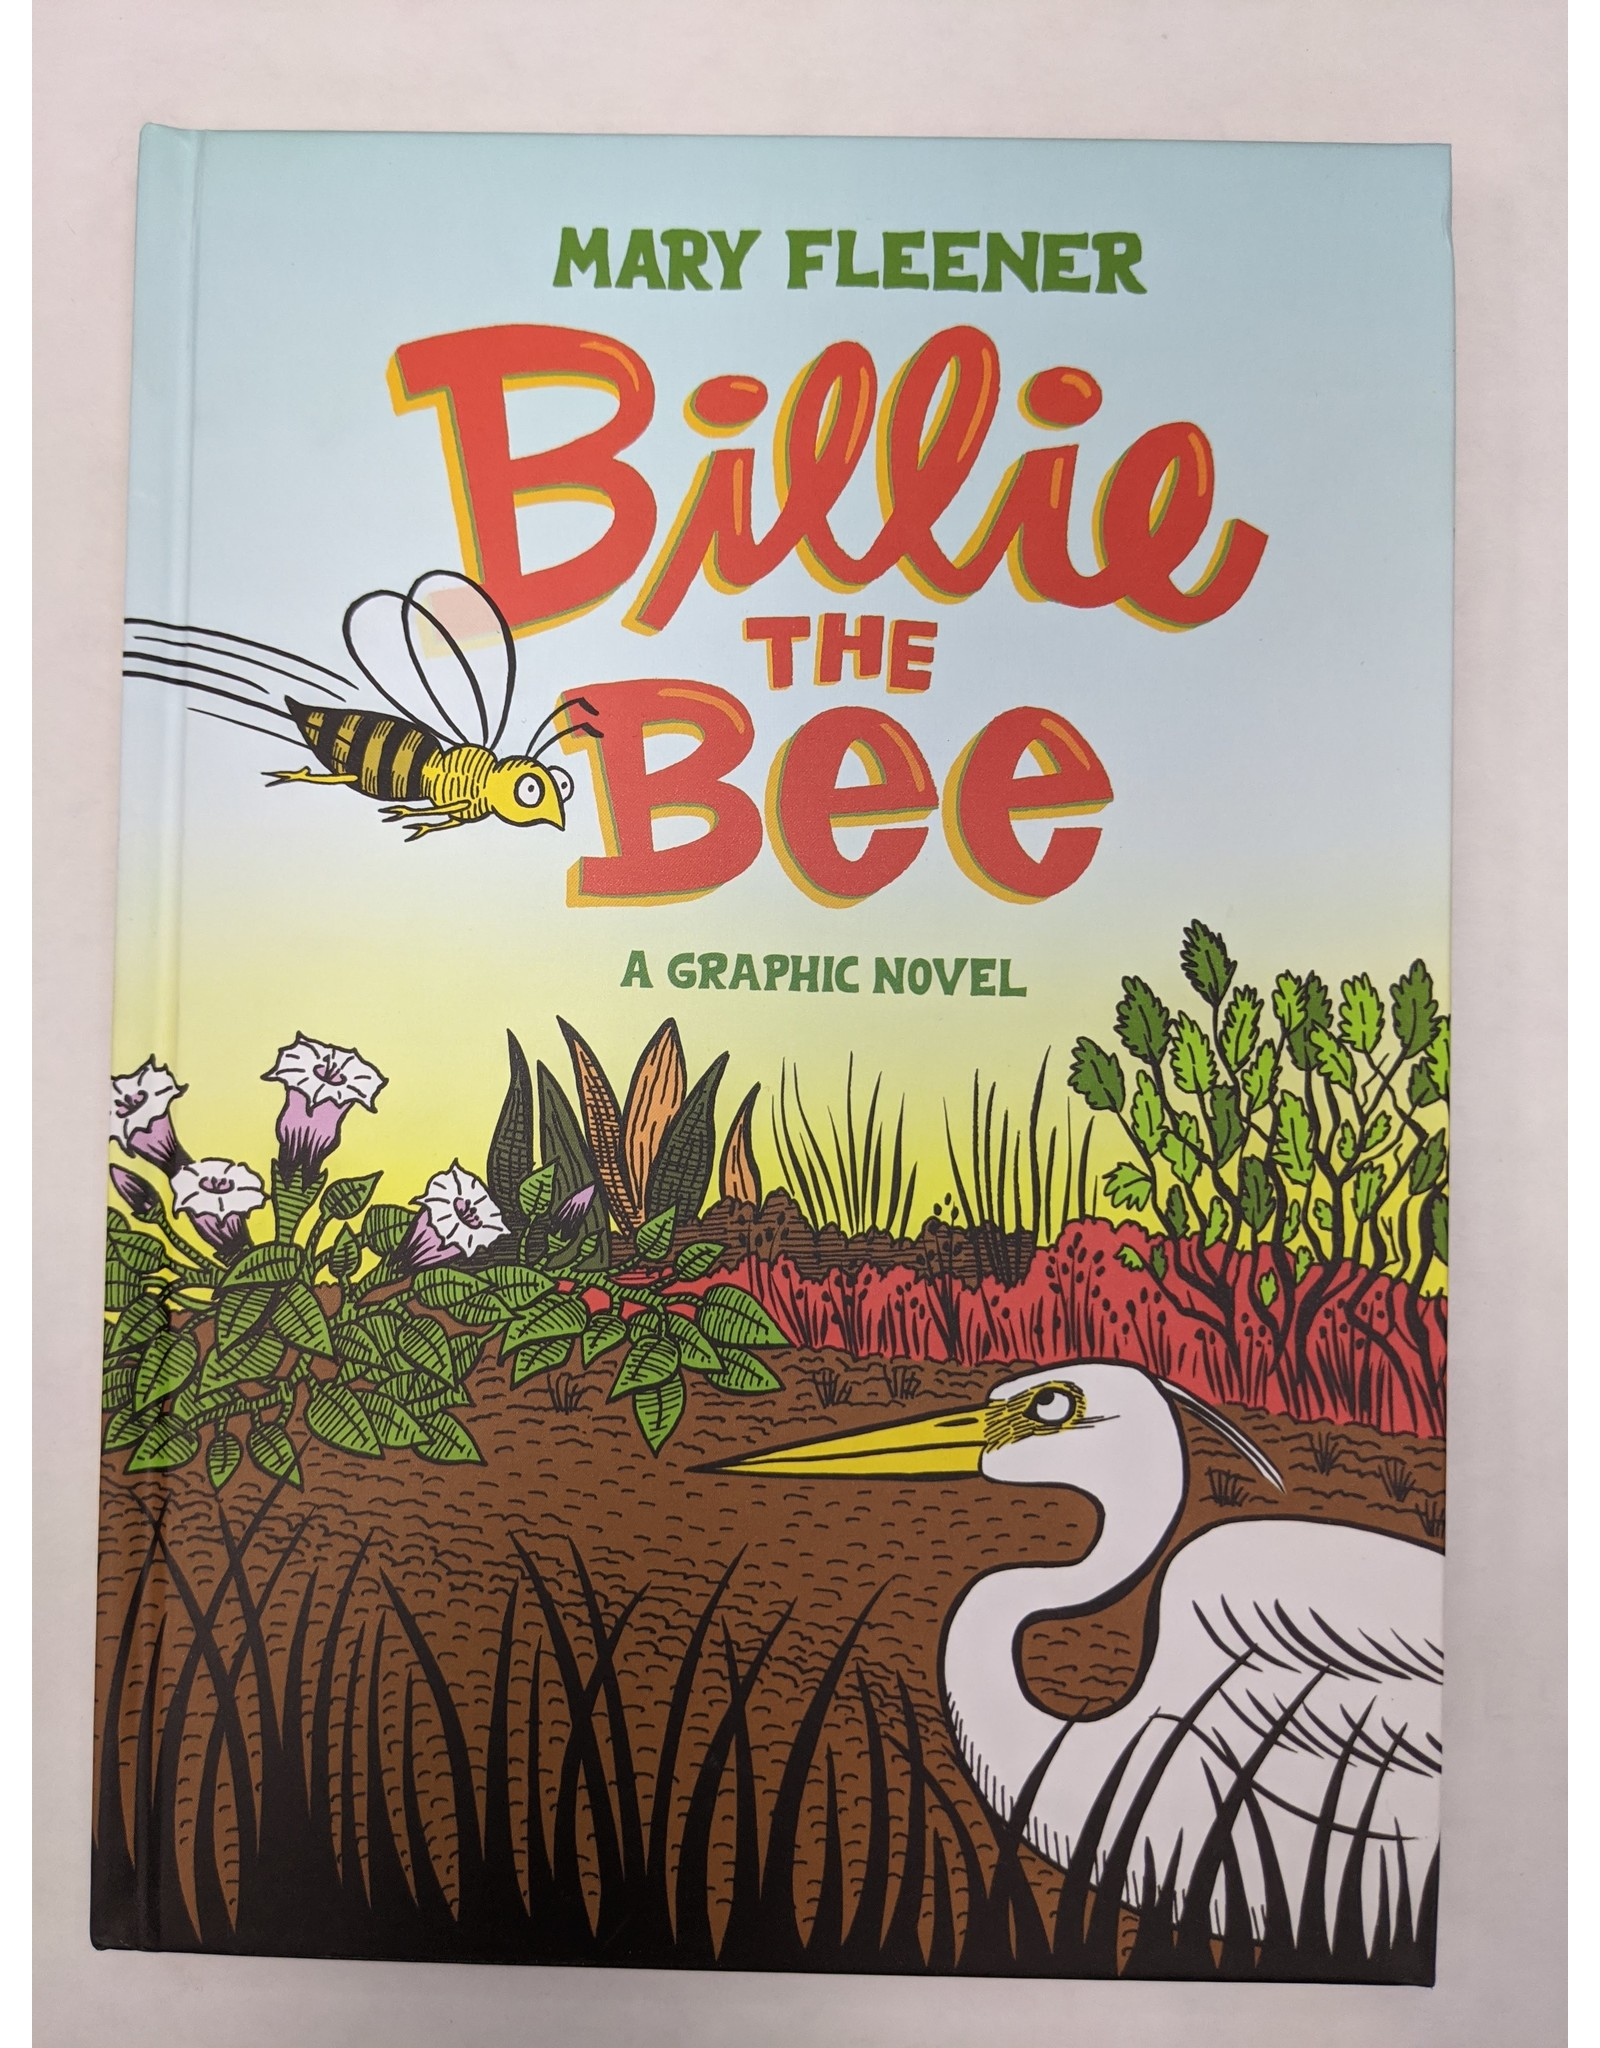 FANTAGRAPHICS BOOKS BILLIE THE BEE HC